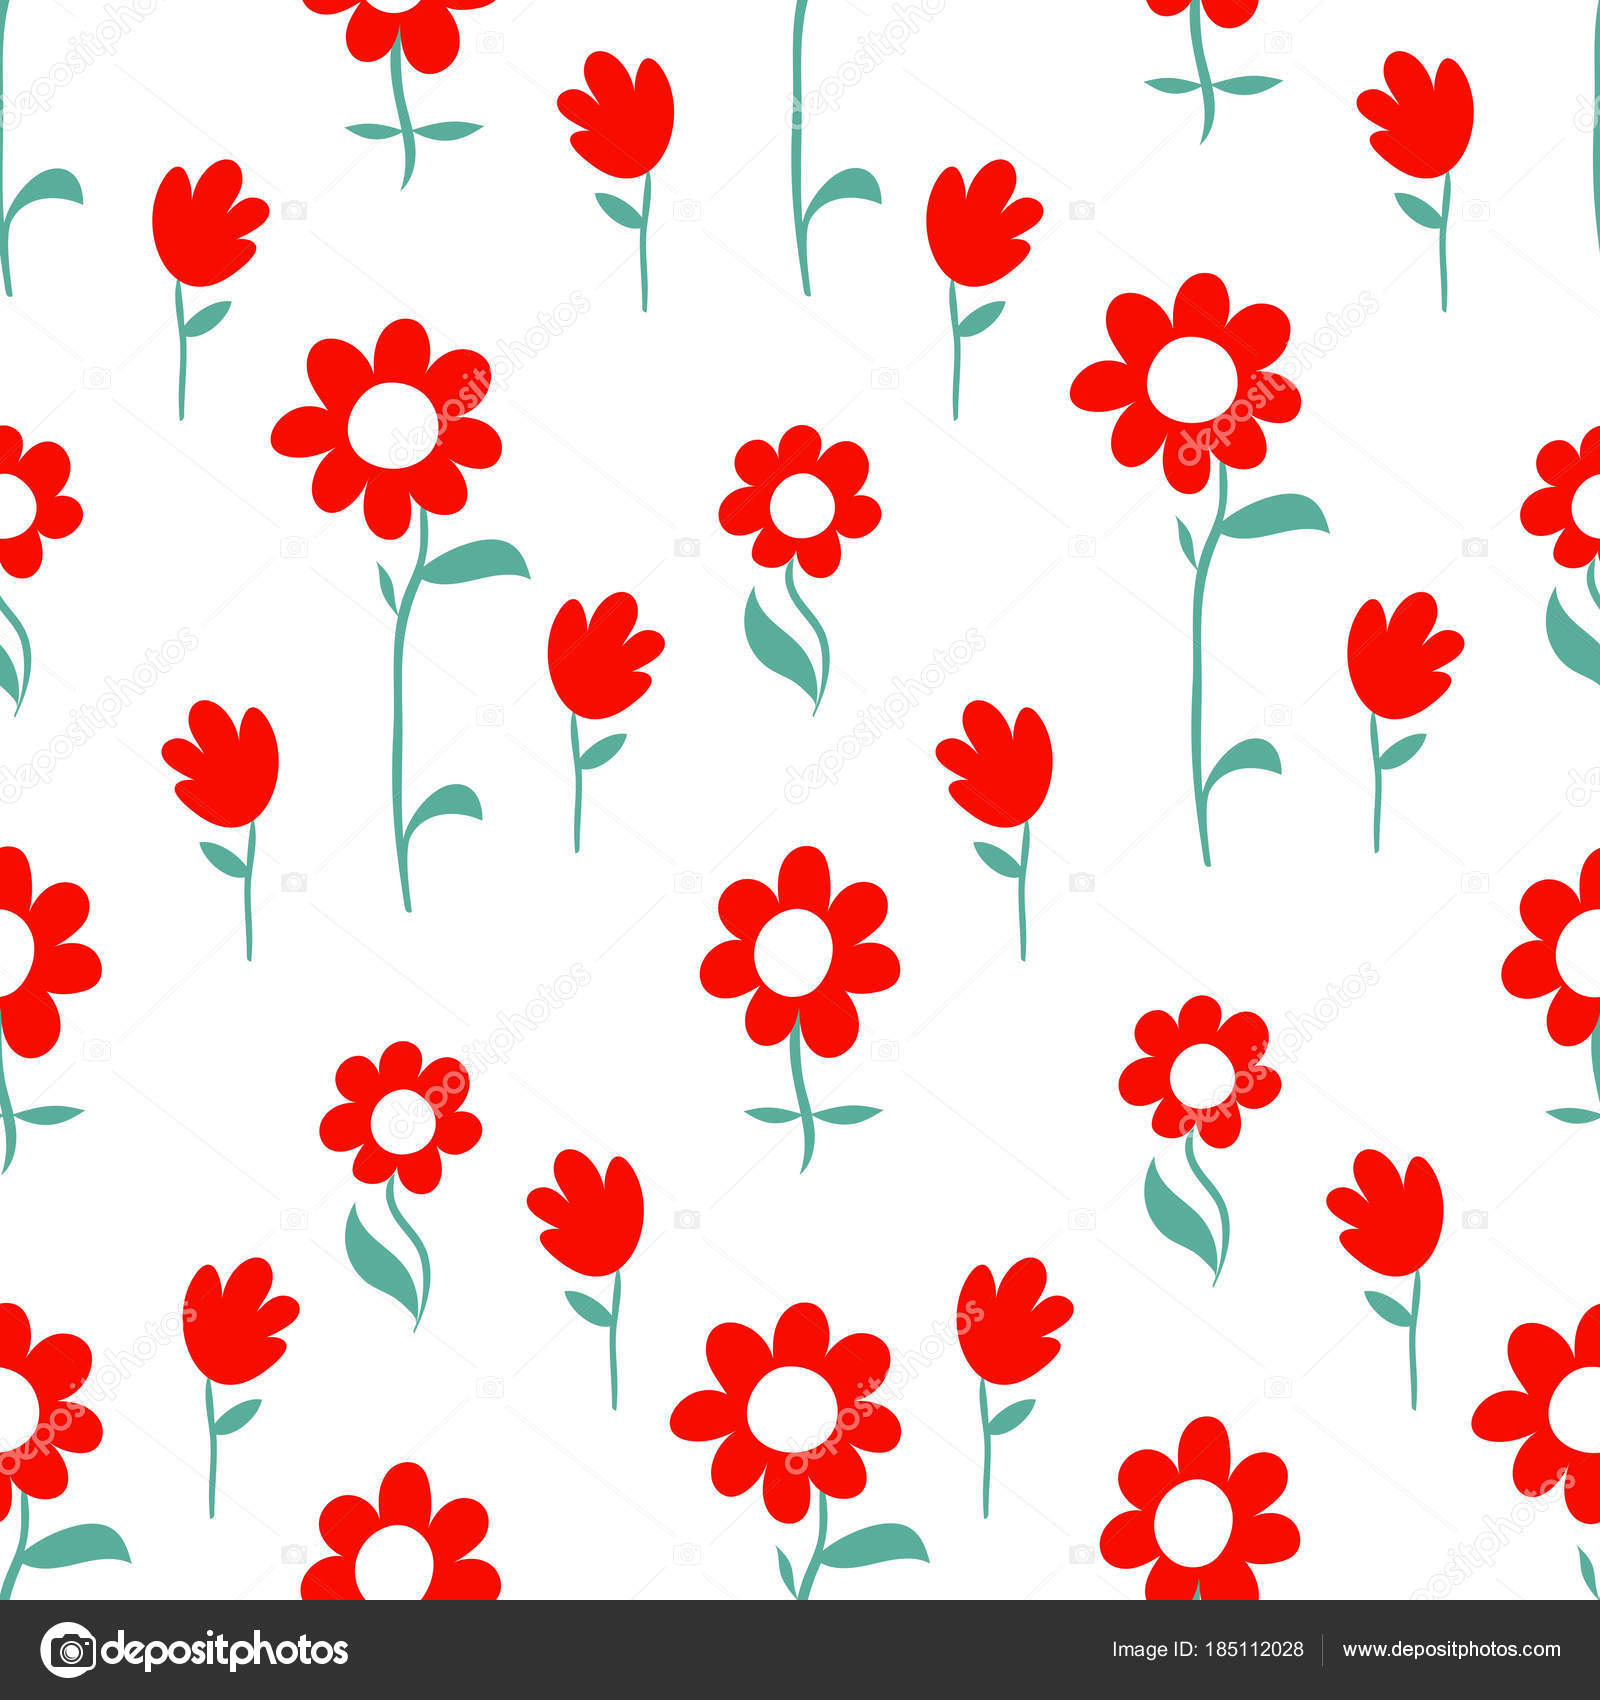 Vector Floral Pattern Design Hand Drawn Lovely Flowers Cute Contemporary Seamless Background And Print For Kids And Babies Cloth Design Stock Vector C Duddi 185112028